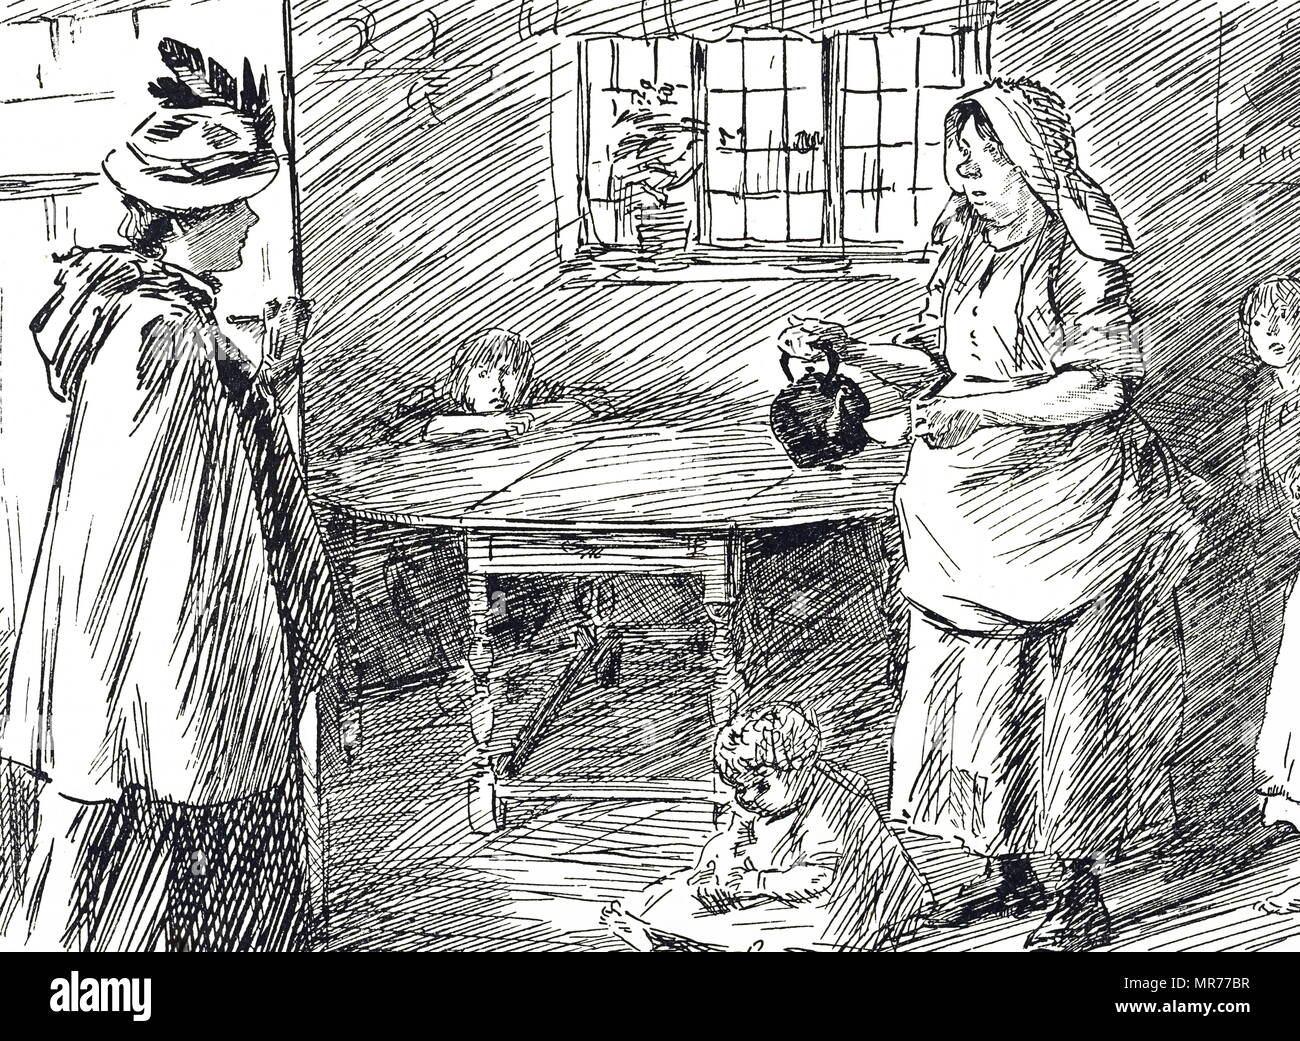 Cartoon depicting a landlady visiting her poor tenants to collect their rent. Dated 20th century - Stock Image